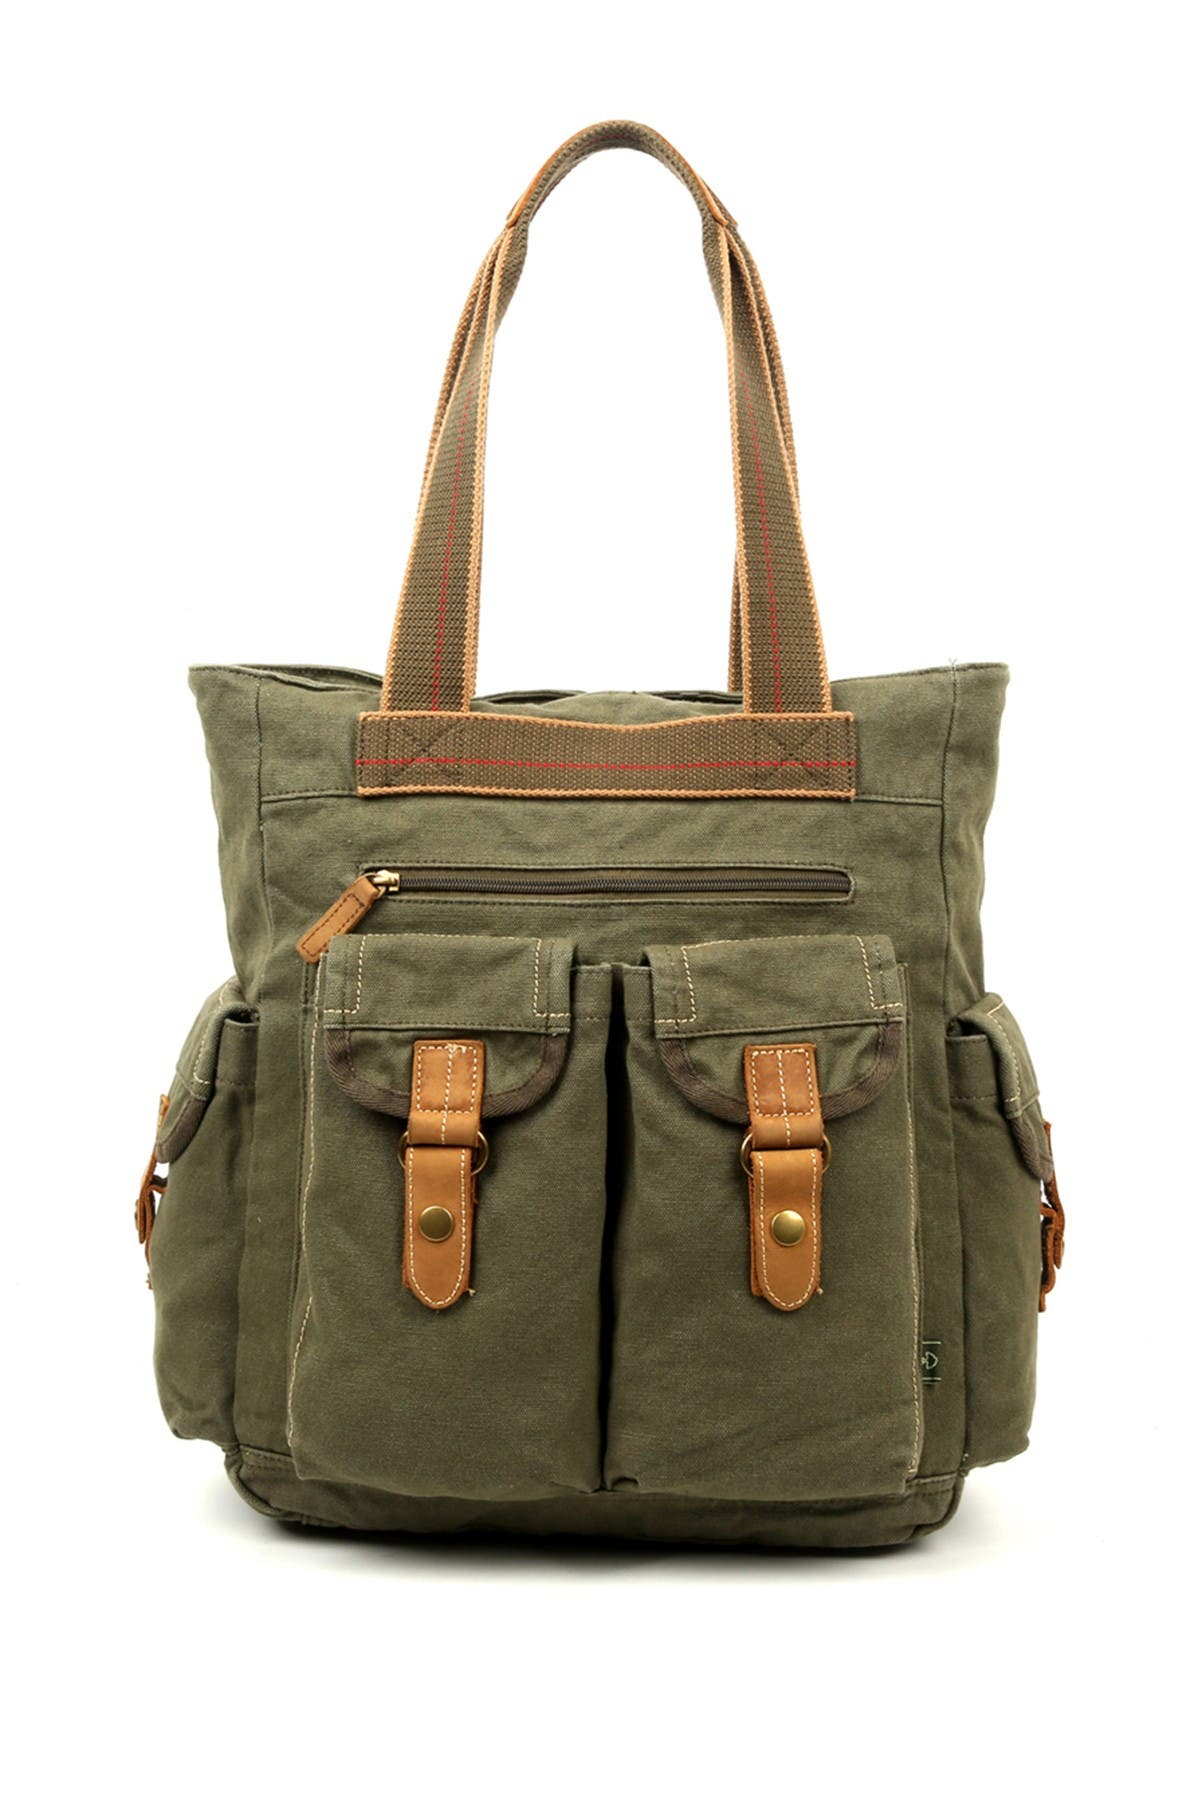 Image of TSD Atona Utility Canvas Tote Bag